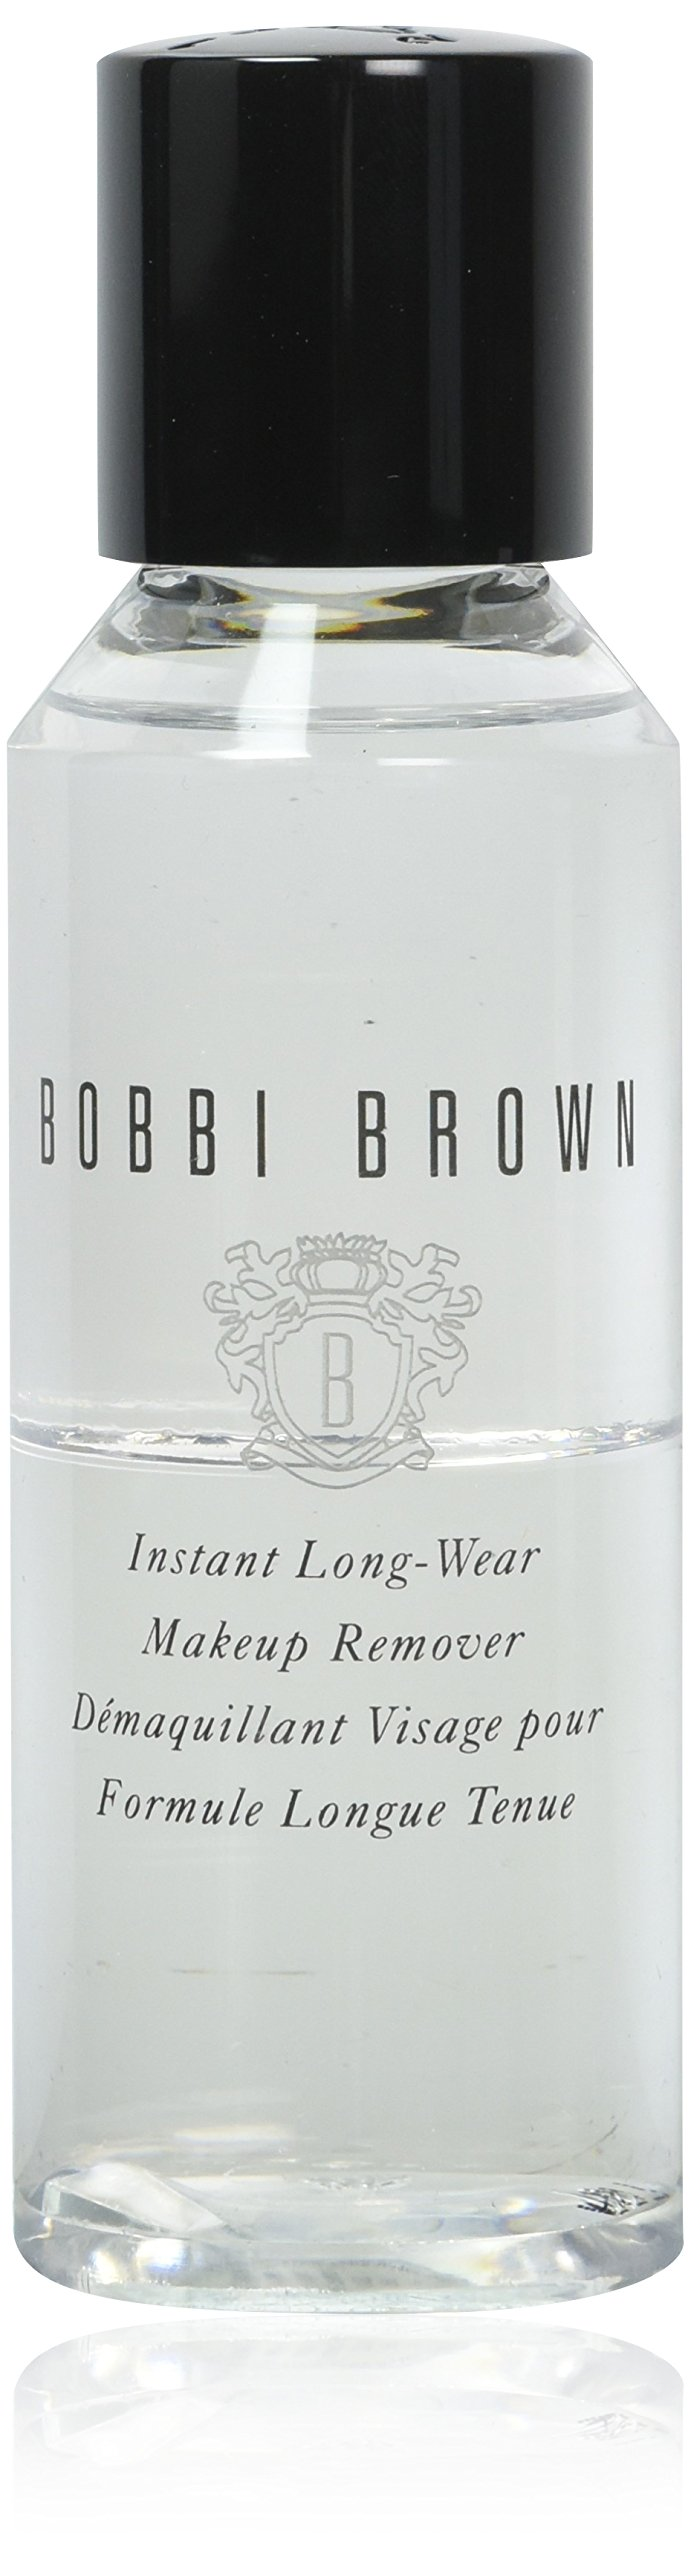 Bobbi Brown Instant Long-Wear Makeup Remover, 3.4 Ounce by Bobbi Brown